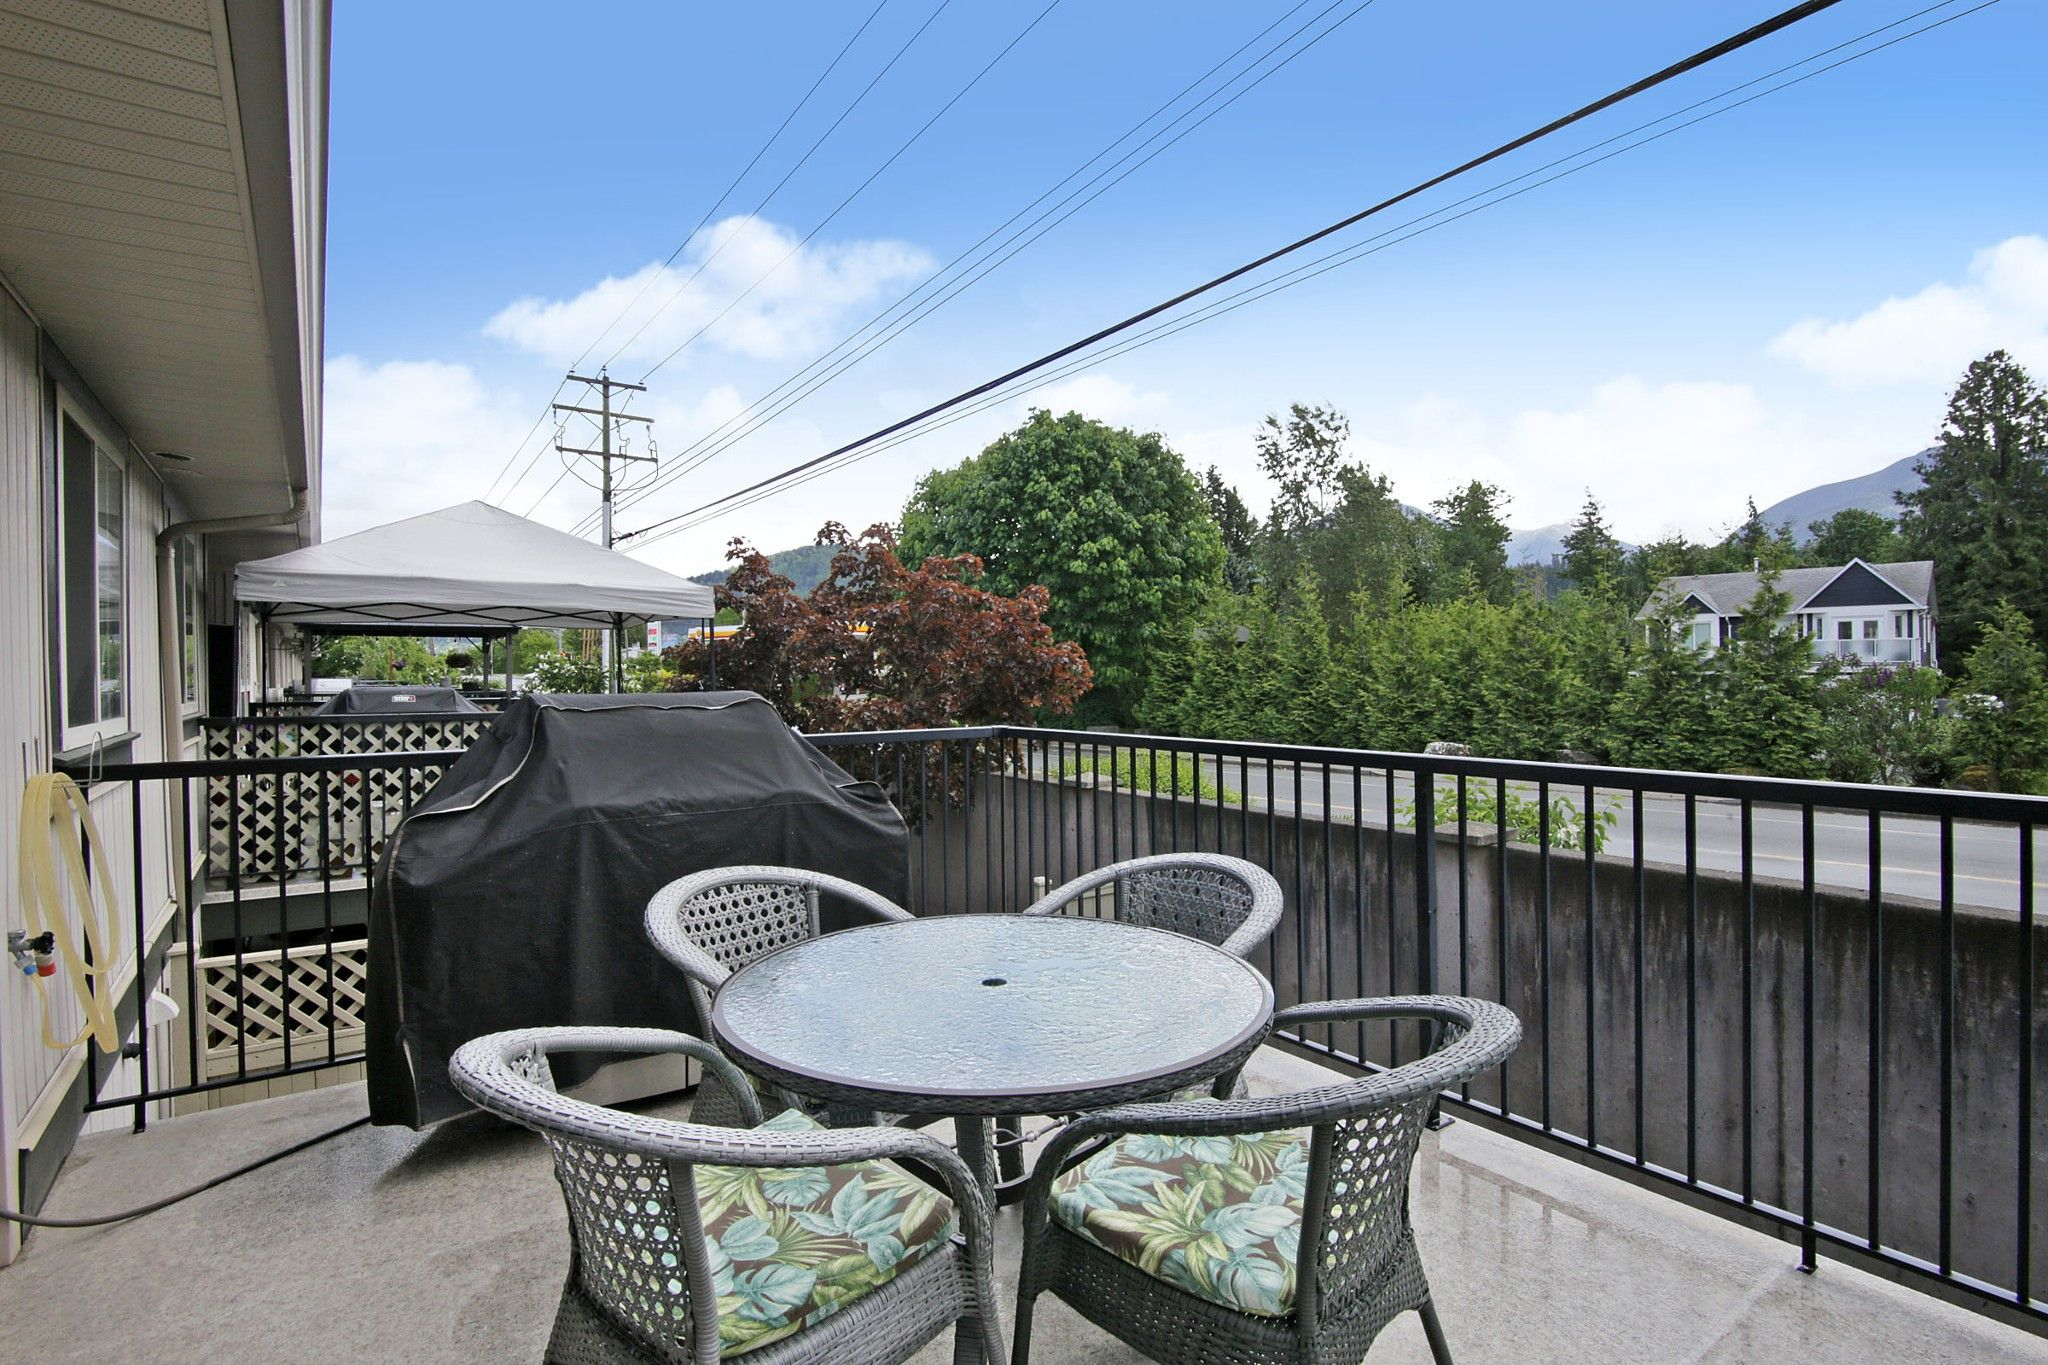 """Photo 26: Photos: 25 6450 BLACKWOOD Lane in Chilliwack: Sardis West Vedder Rd Townhouse for sale in """"THE MAPLES"""" (Sardis)  : MLS®# R2581381"""